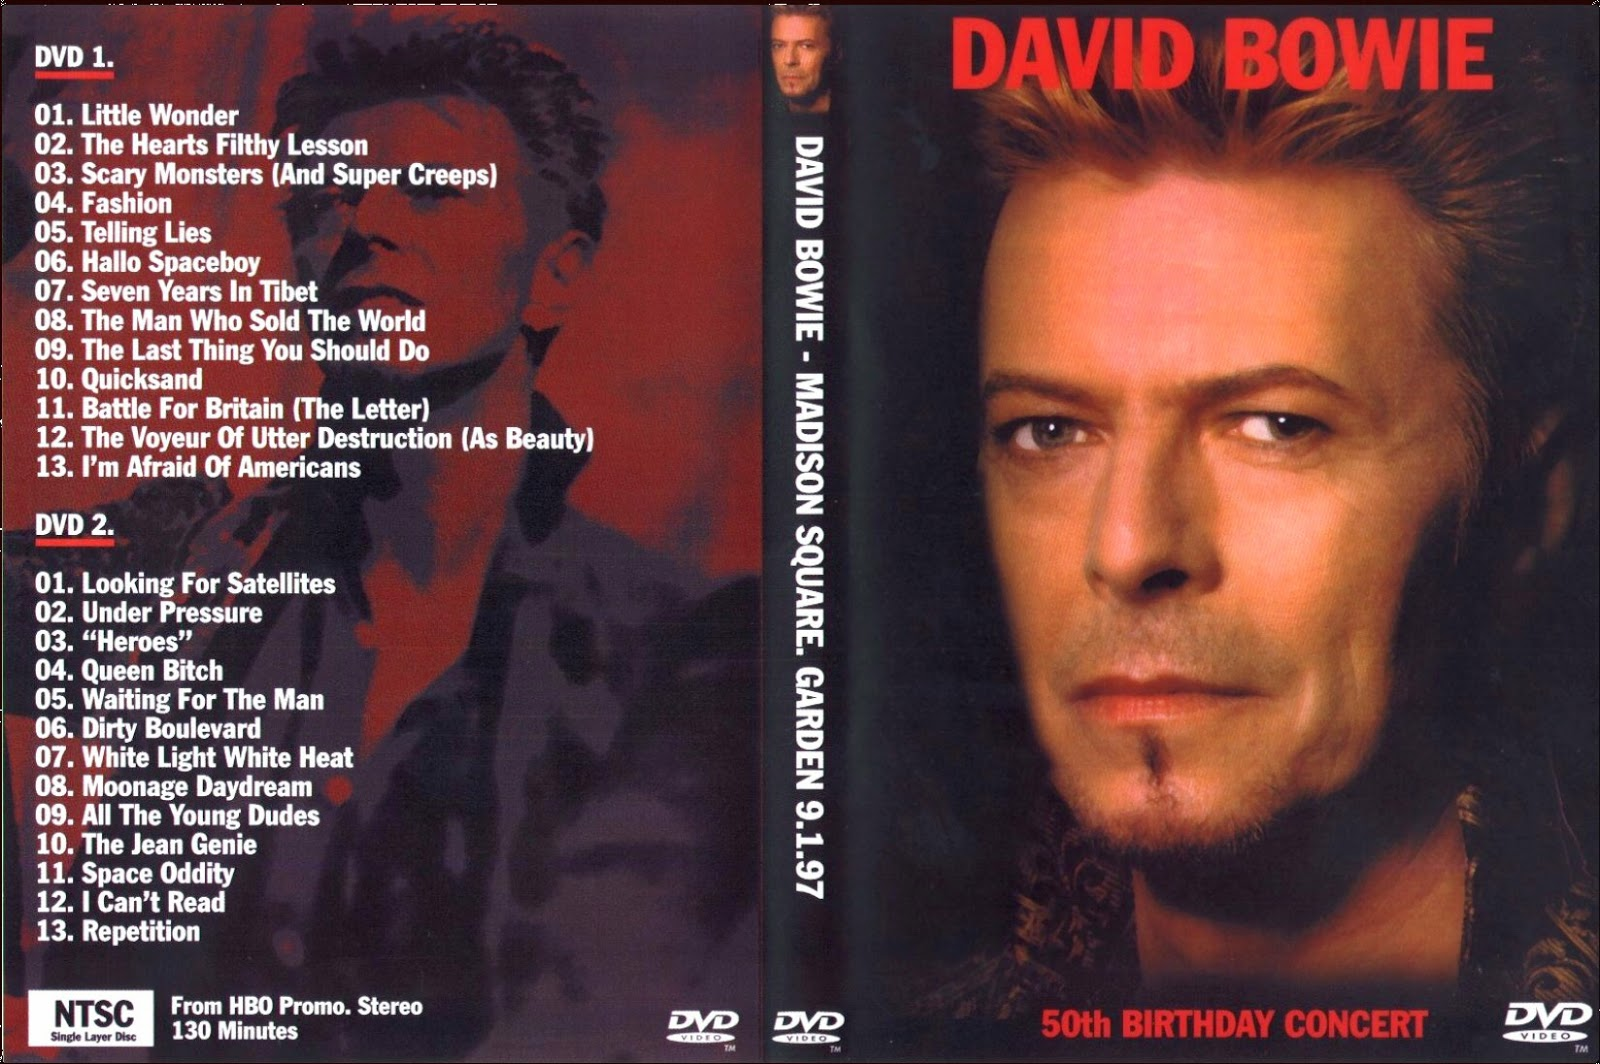 David Bowie - New York City, NY 1997 (2xDVDfull pro-shot)